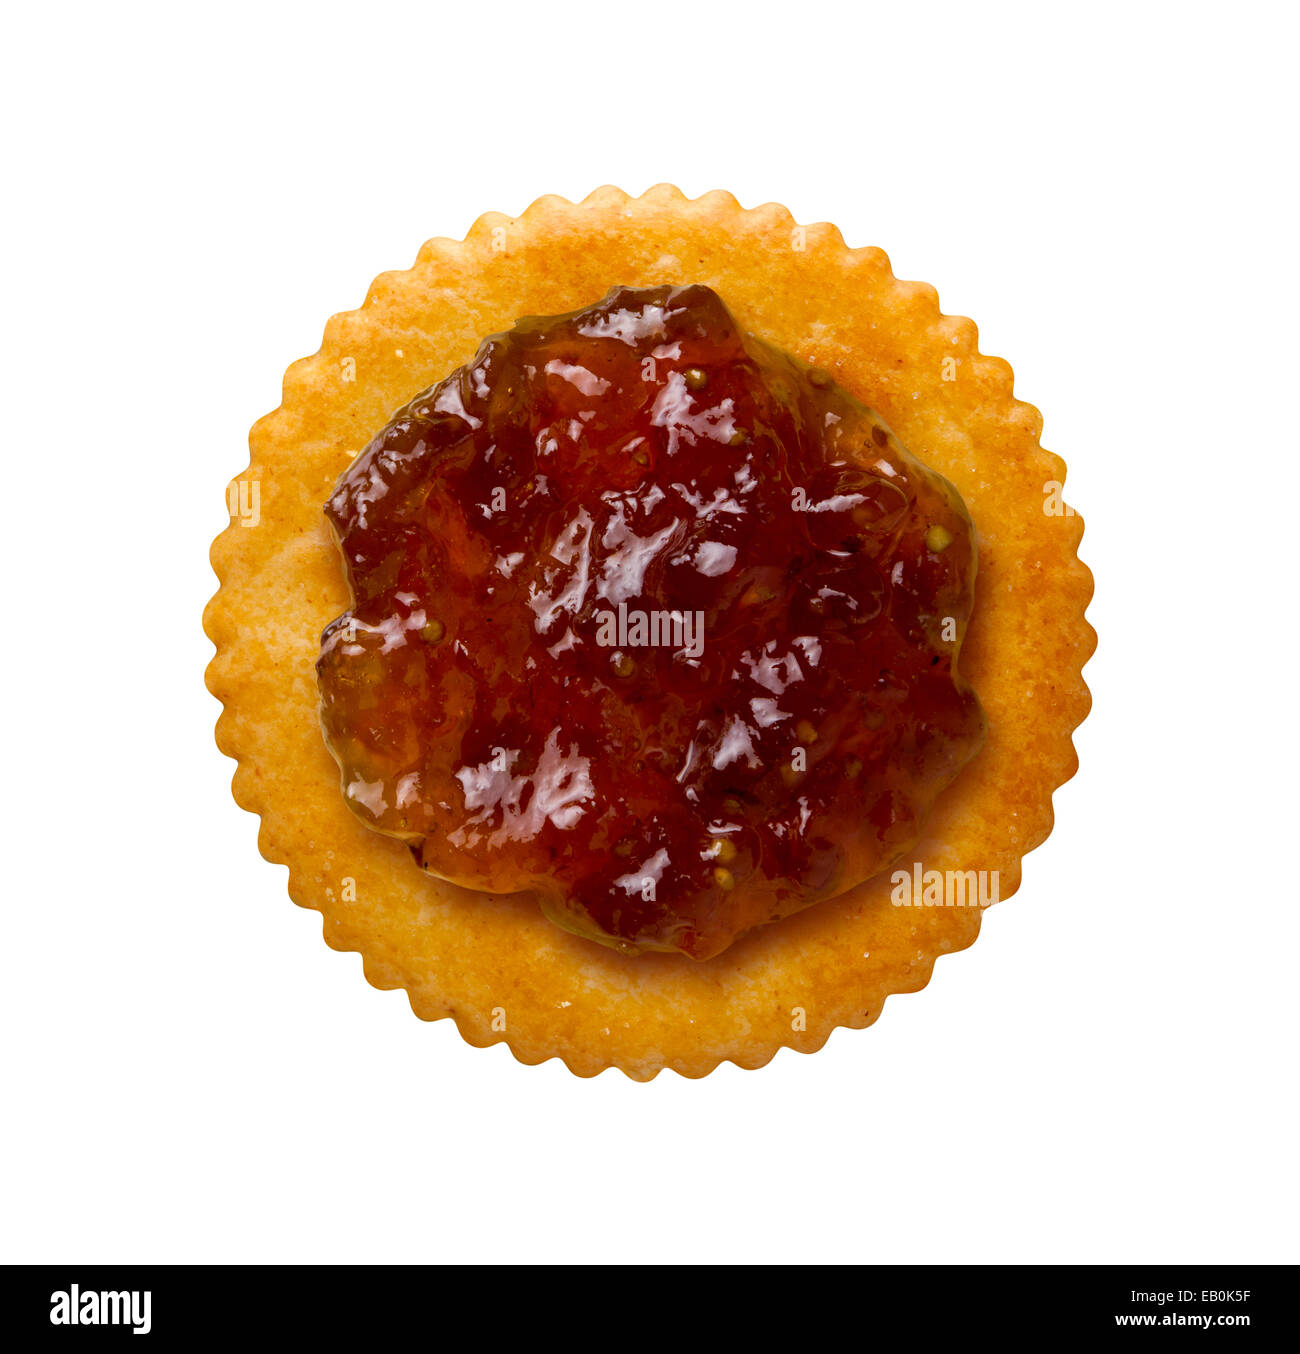 Fig Preserves on a Round Cracker isolated on a white background. Viewed from above. - Stock Image